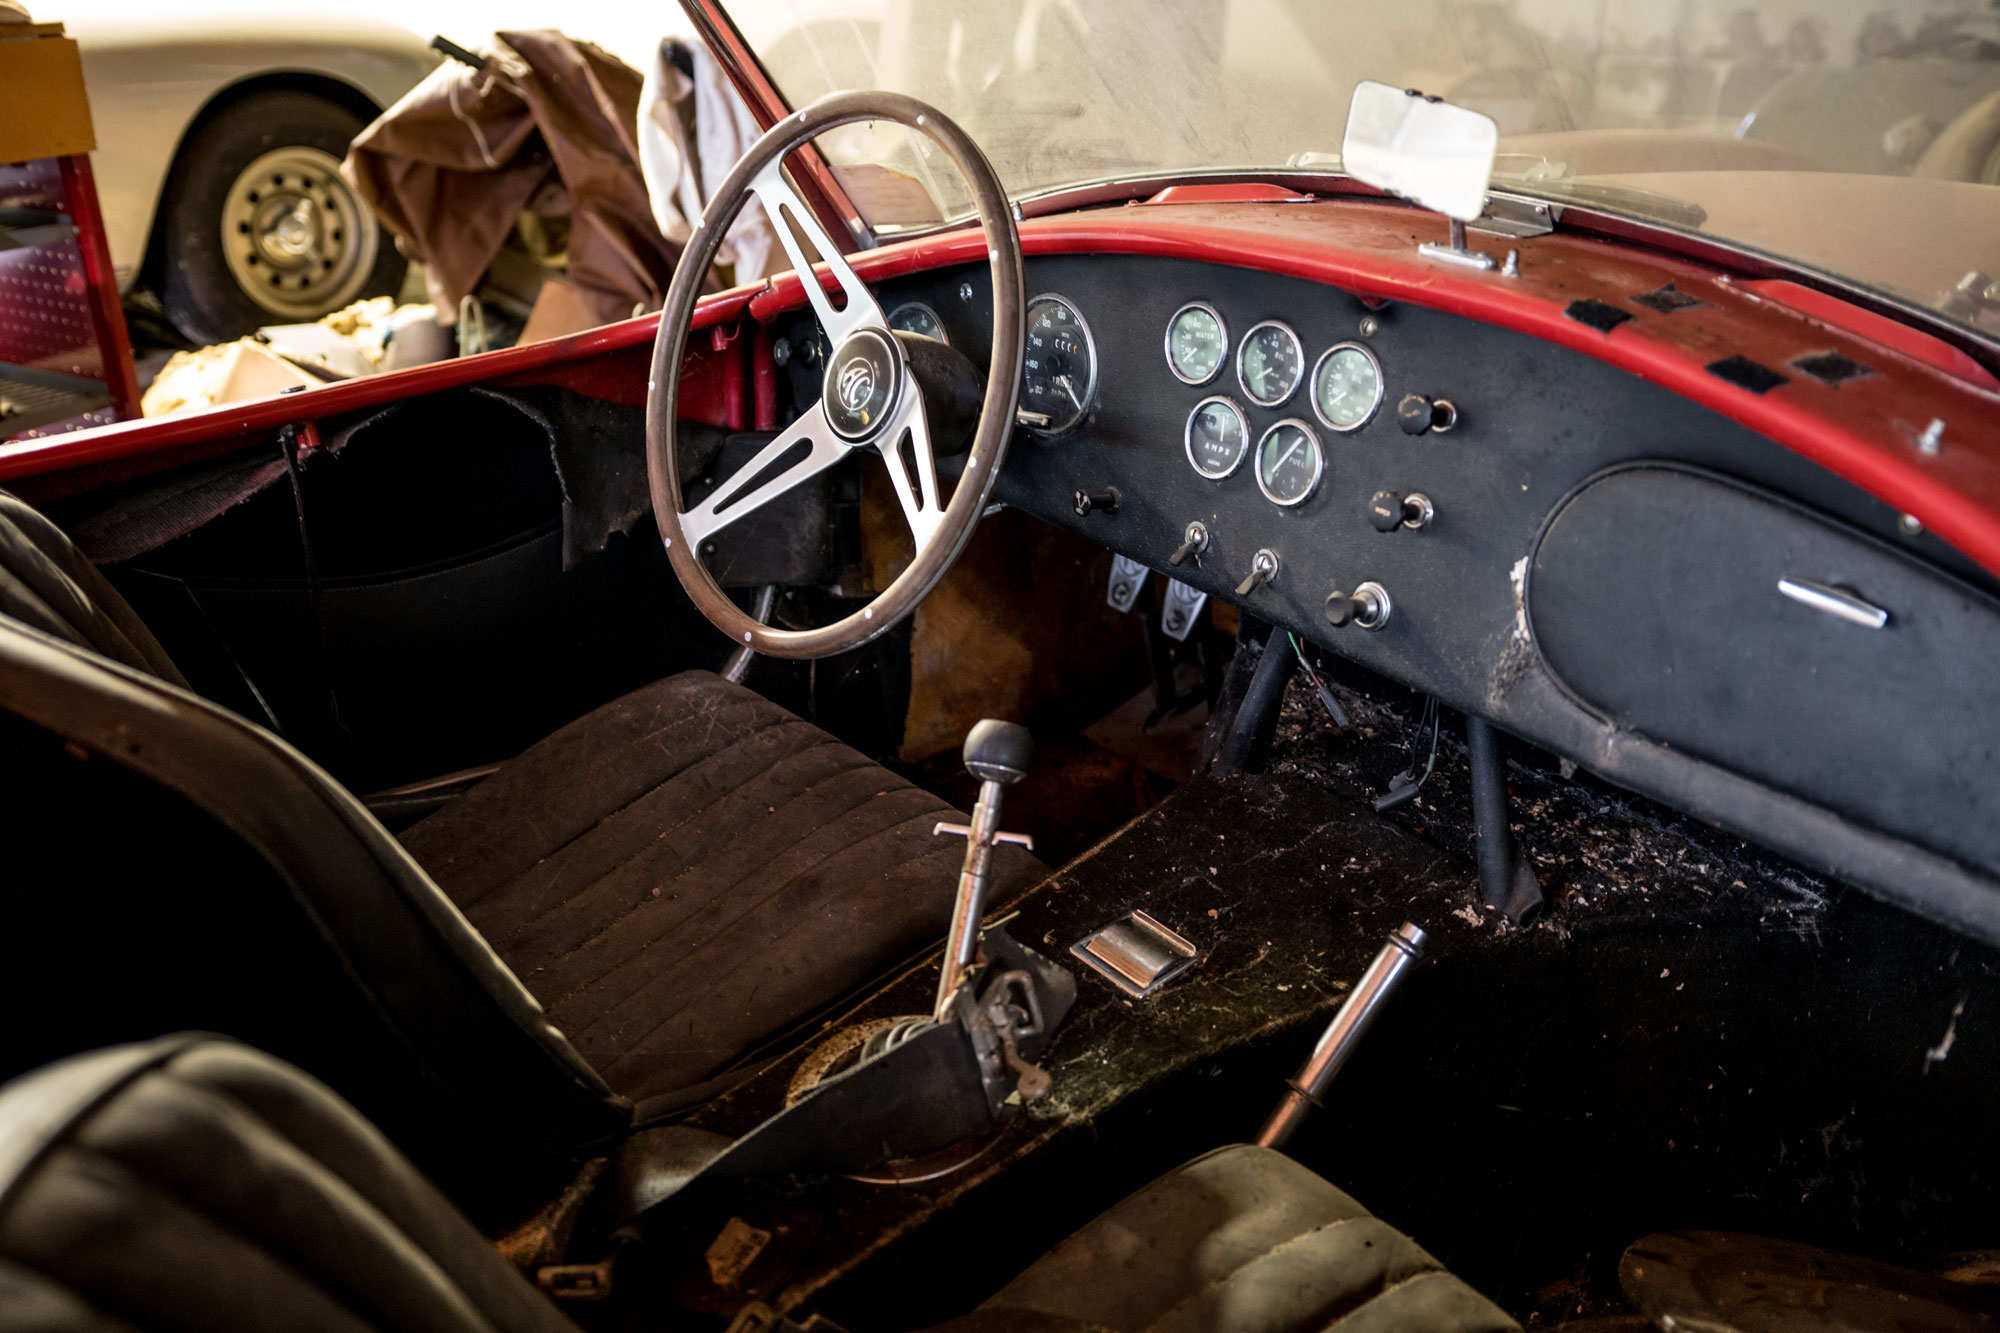 1966 Shelby Cobra 427 interior